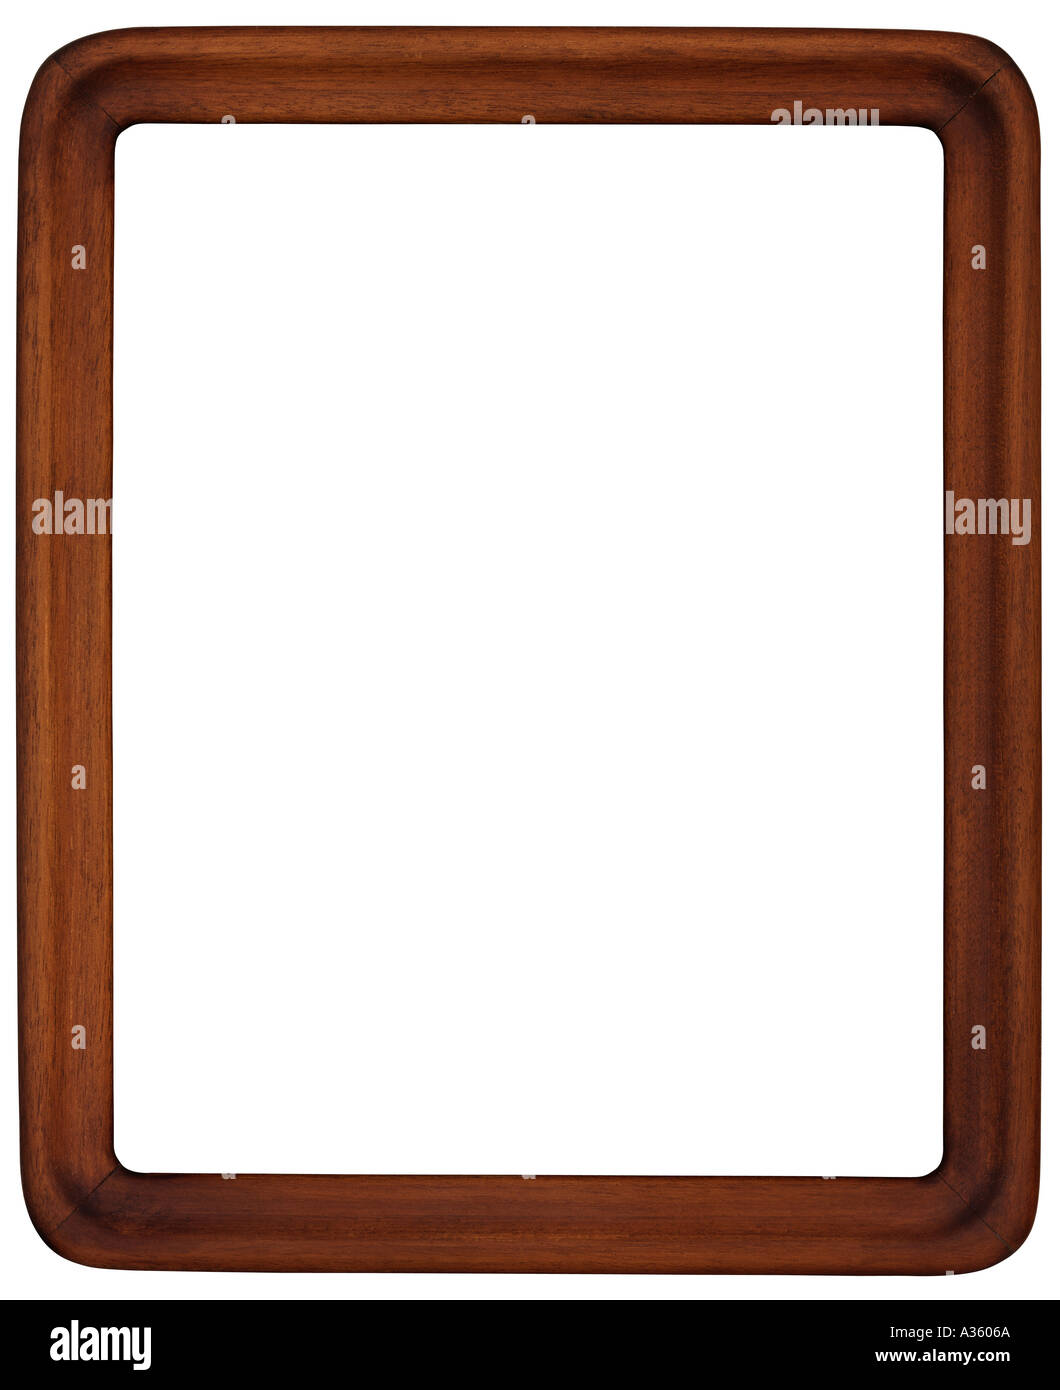 a vertical rectangular brown stained wooden frame with curved or  - a vertical rectangular brown stained wooden frame with curved or roundededges